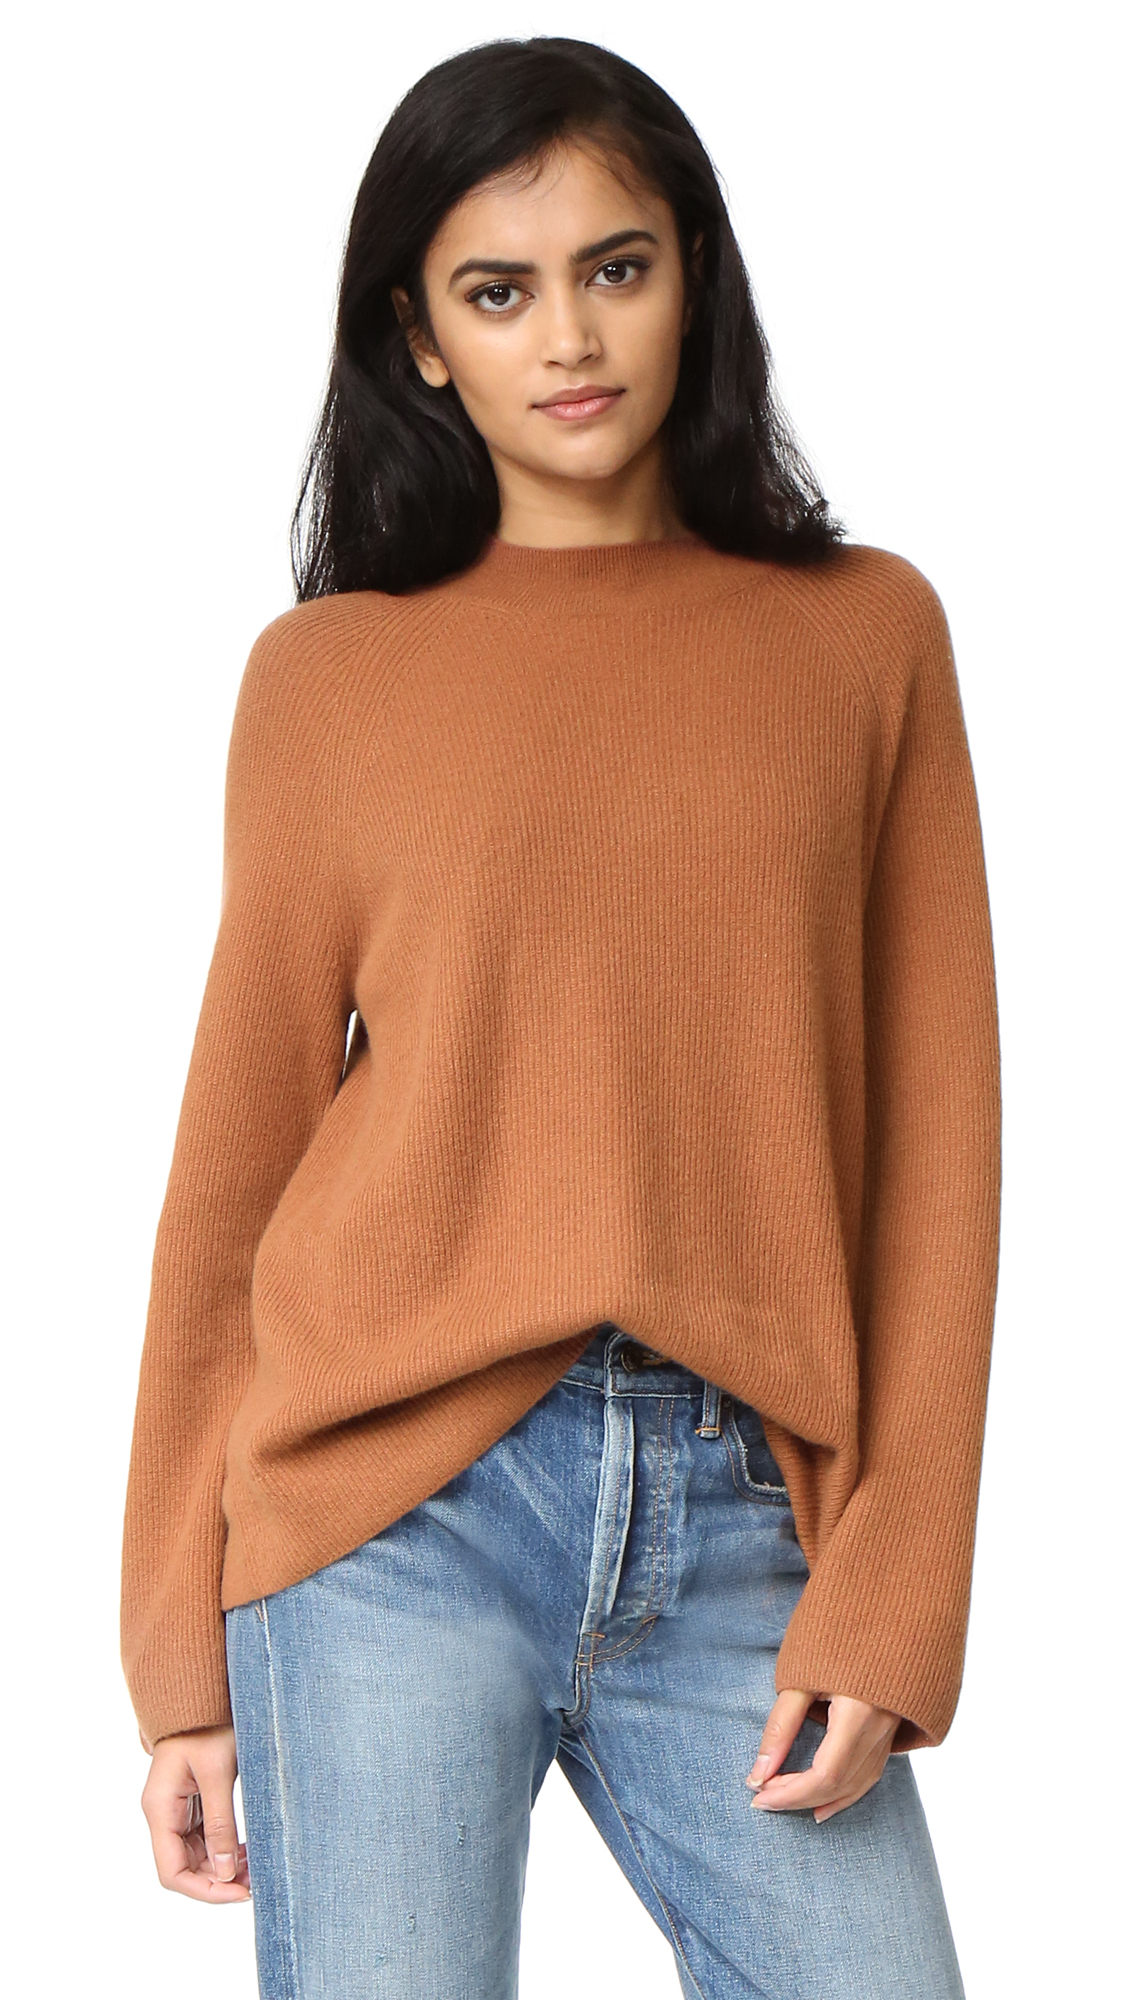 Vince High Crew Sweater - Cinnamon at Shopbop